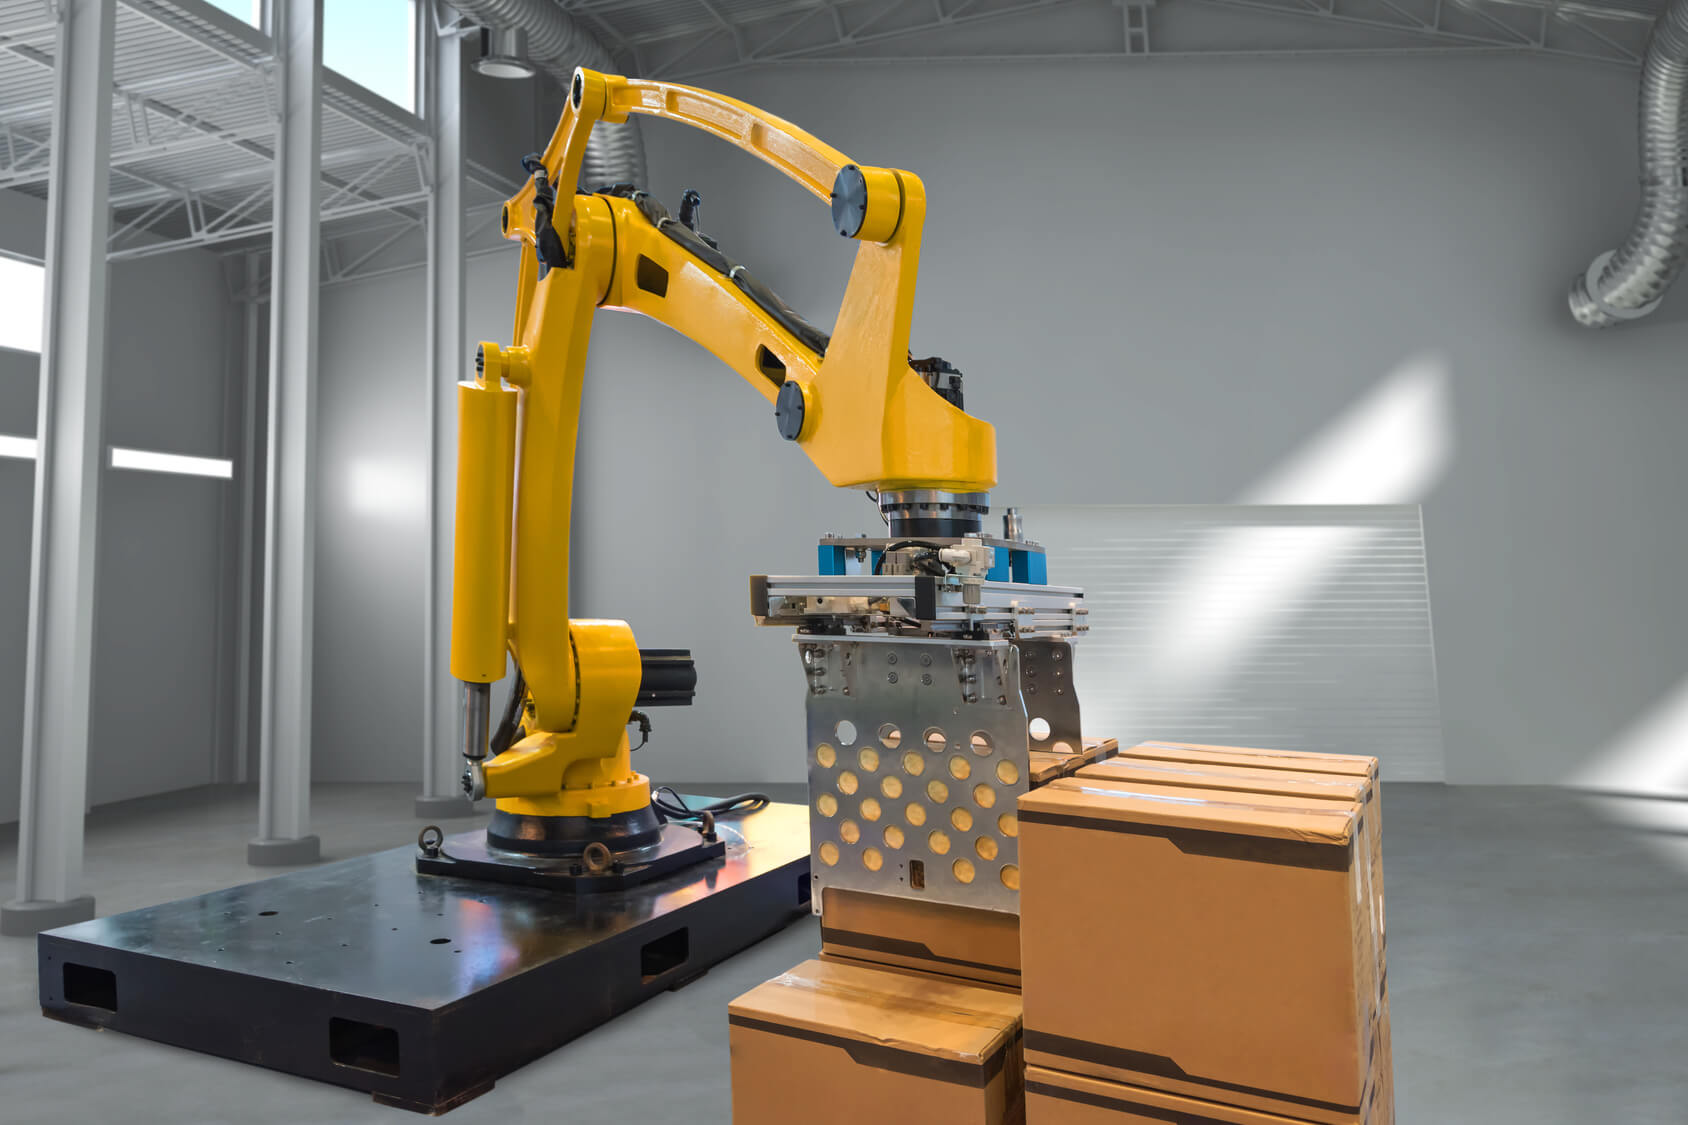 Roboter Industrie 4.0 Lager